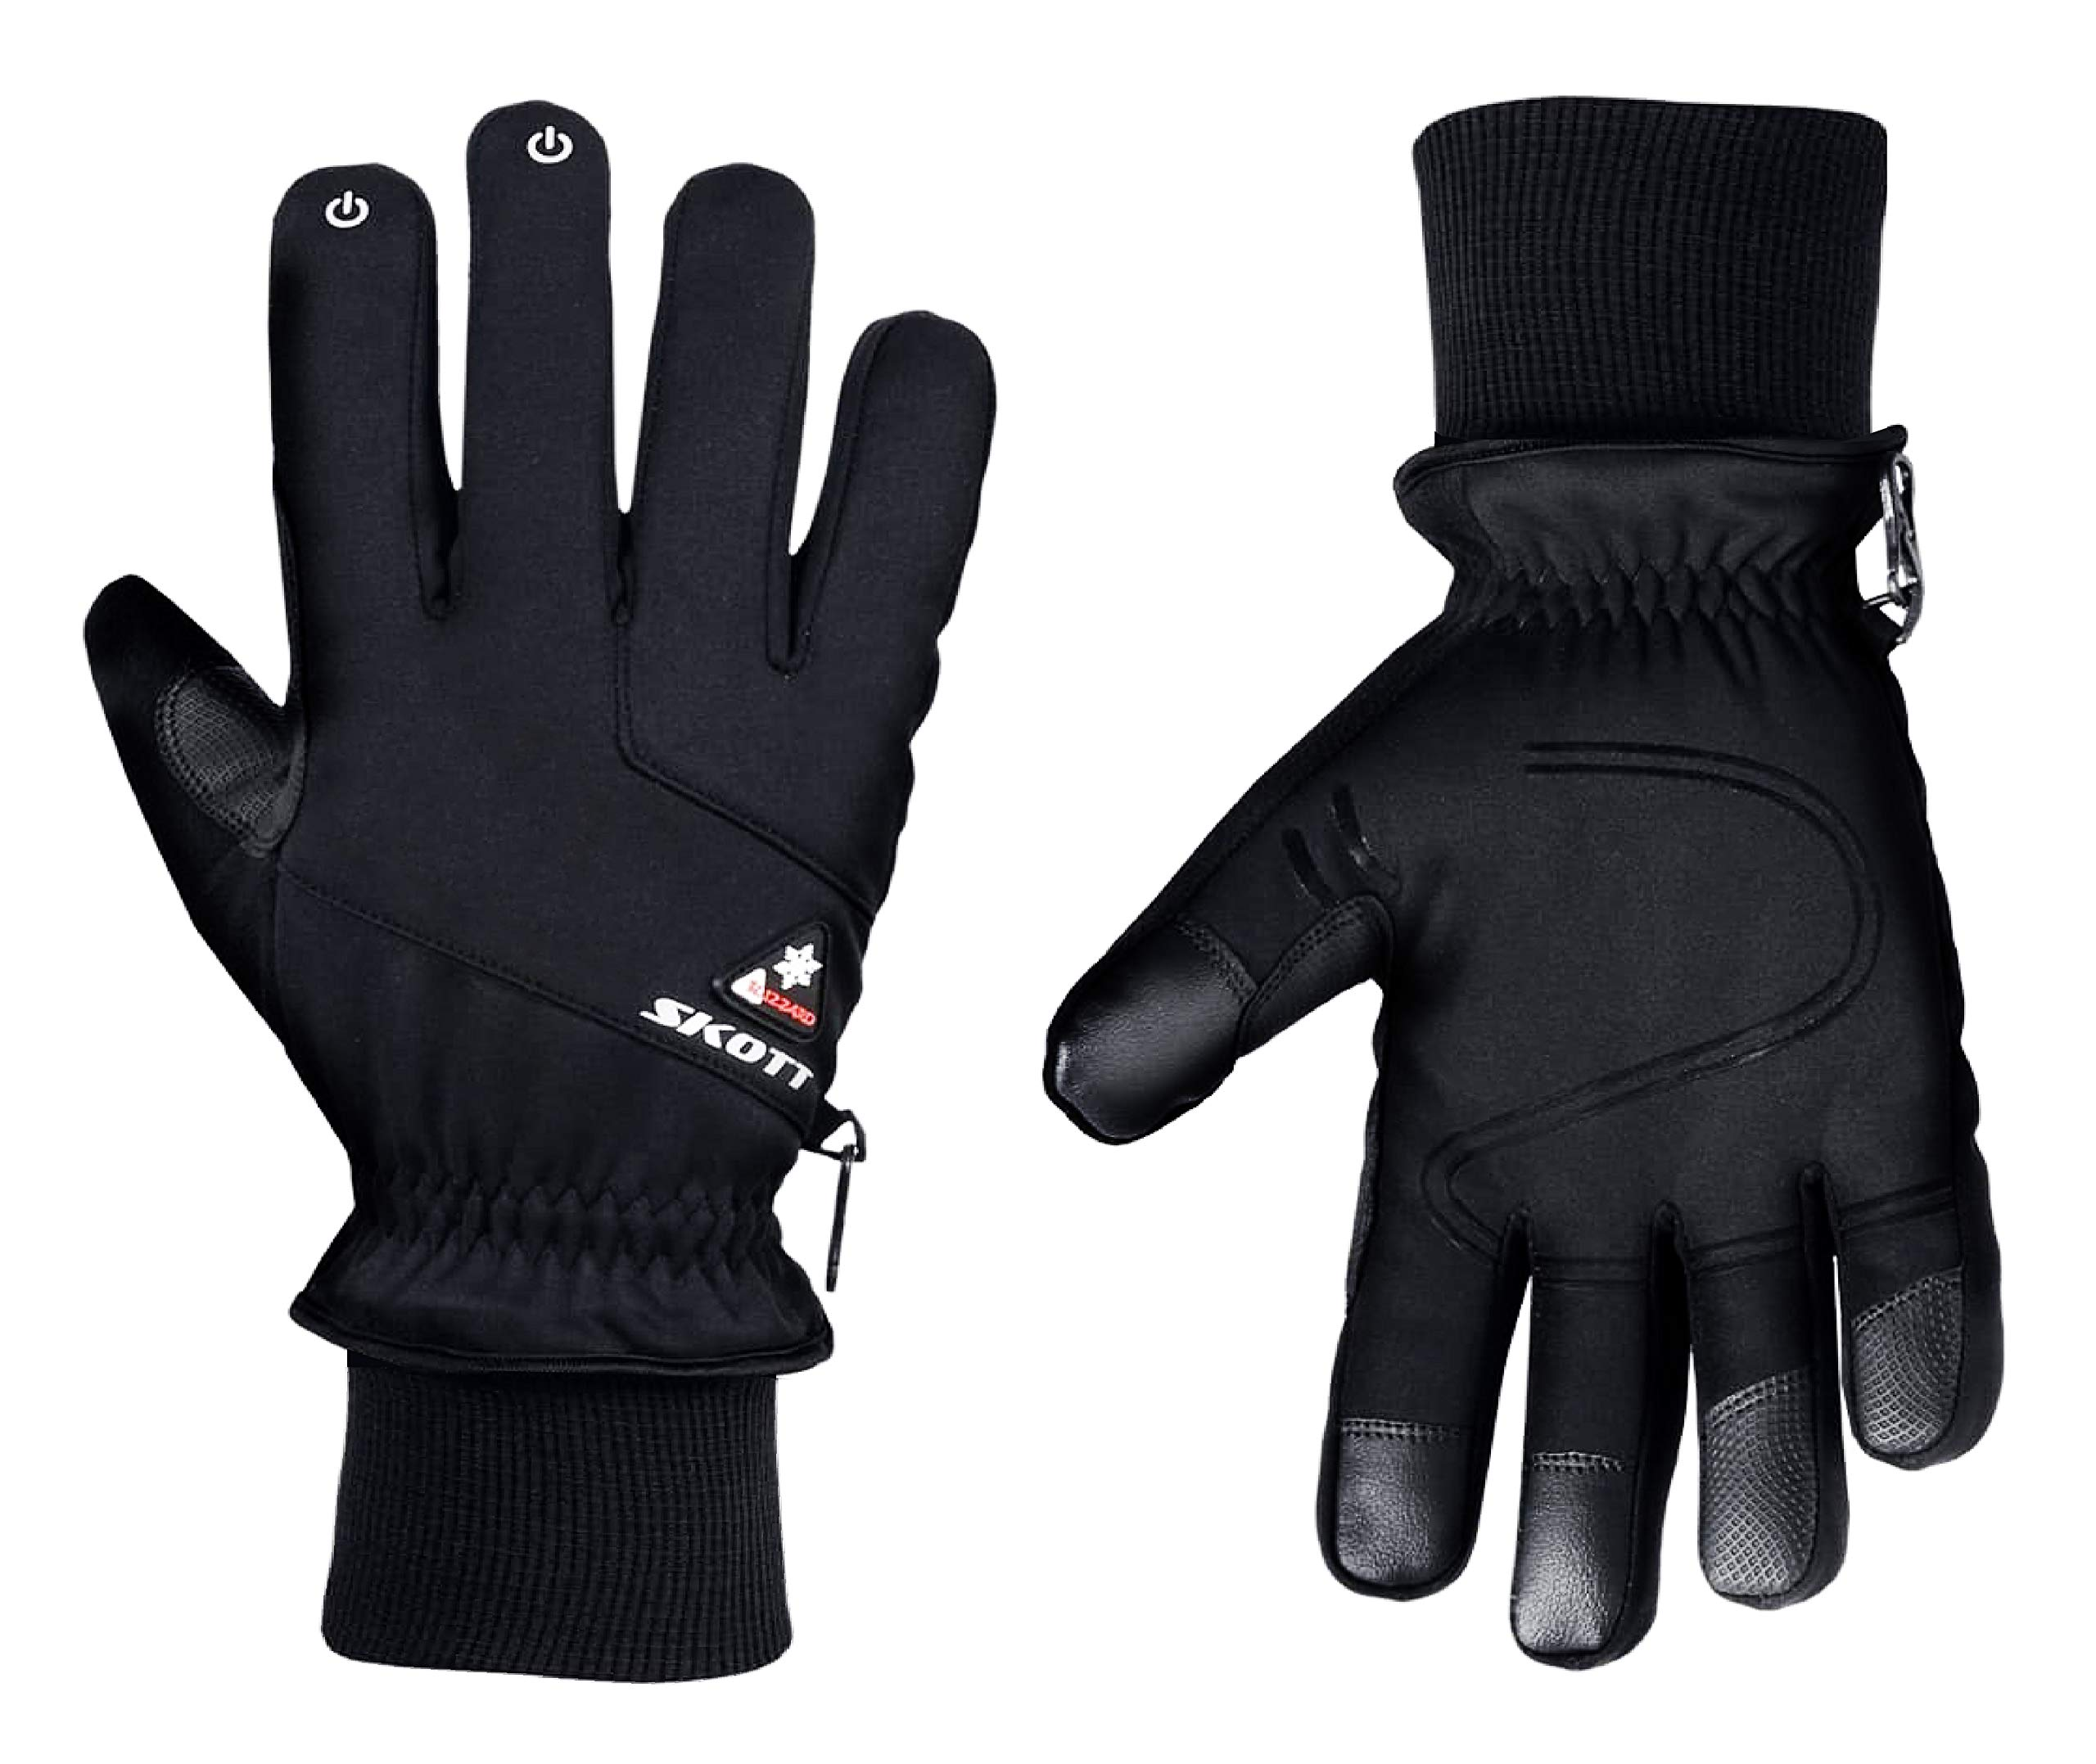 Skott Blizzard Insulated Winter and Multi-Sport Gloves for Outdoor Activities with Unisex Design and Touch Screen Feature